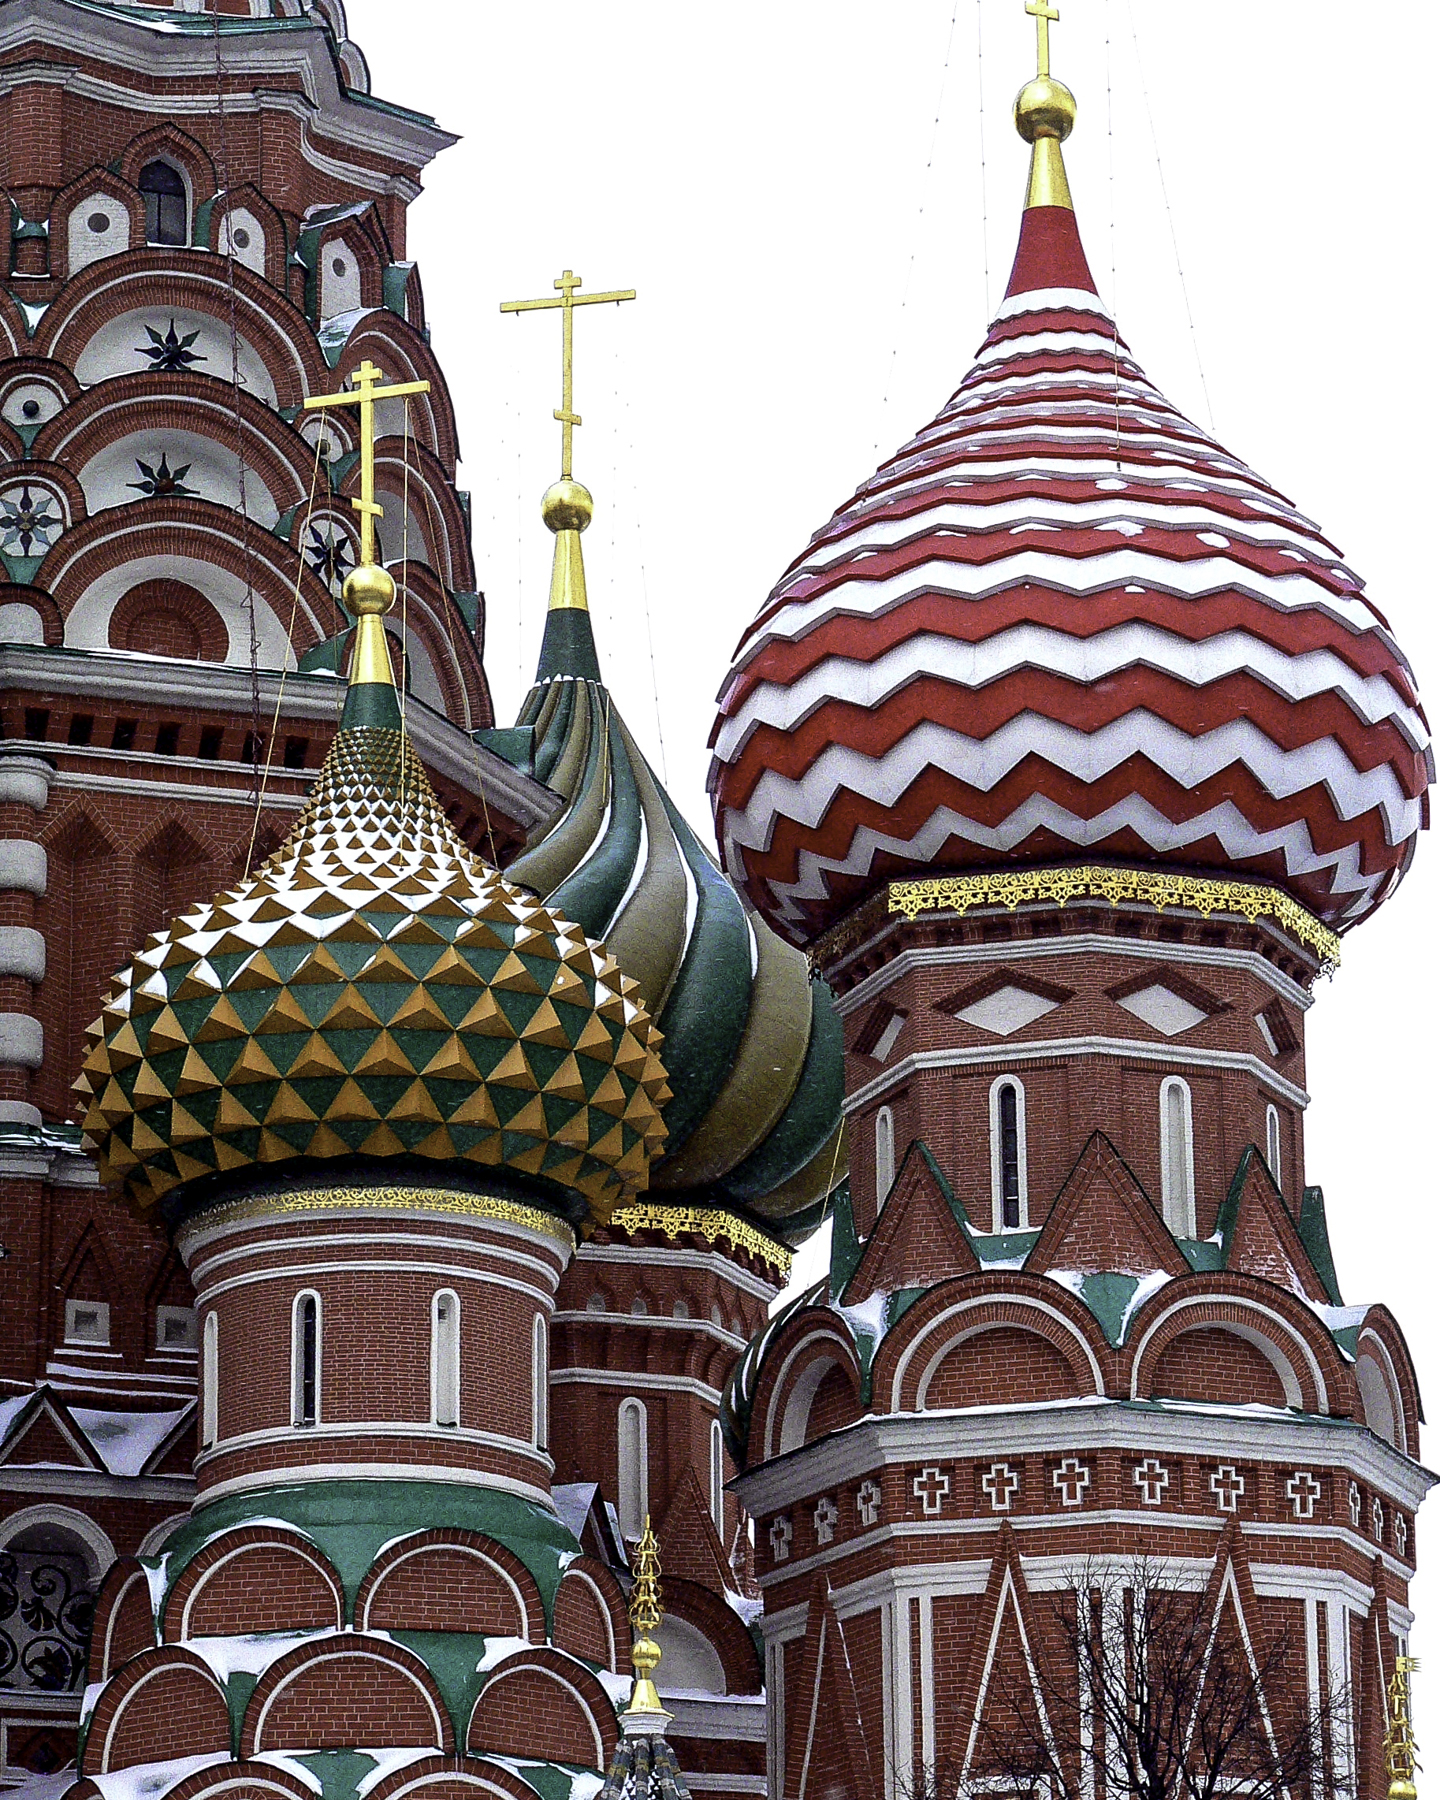 St Basil's, Red Square